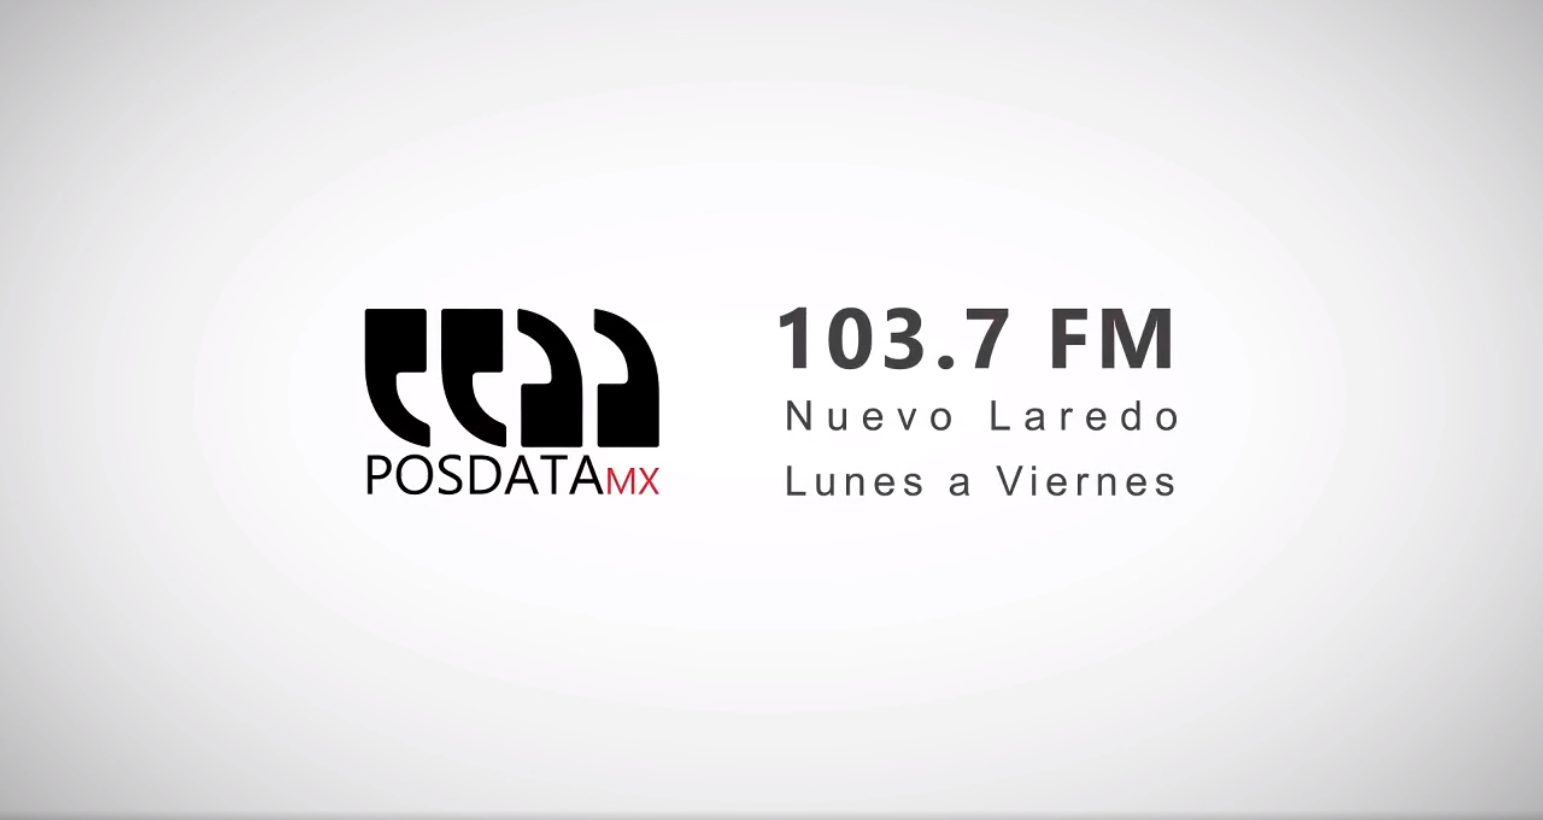 Noticiero PosdataMx